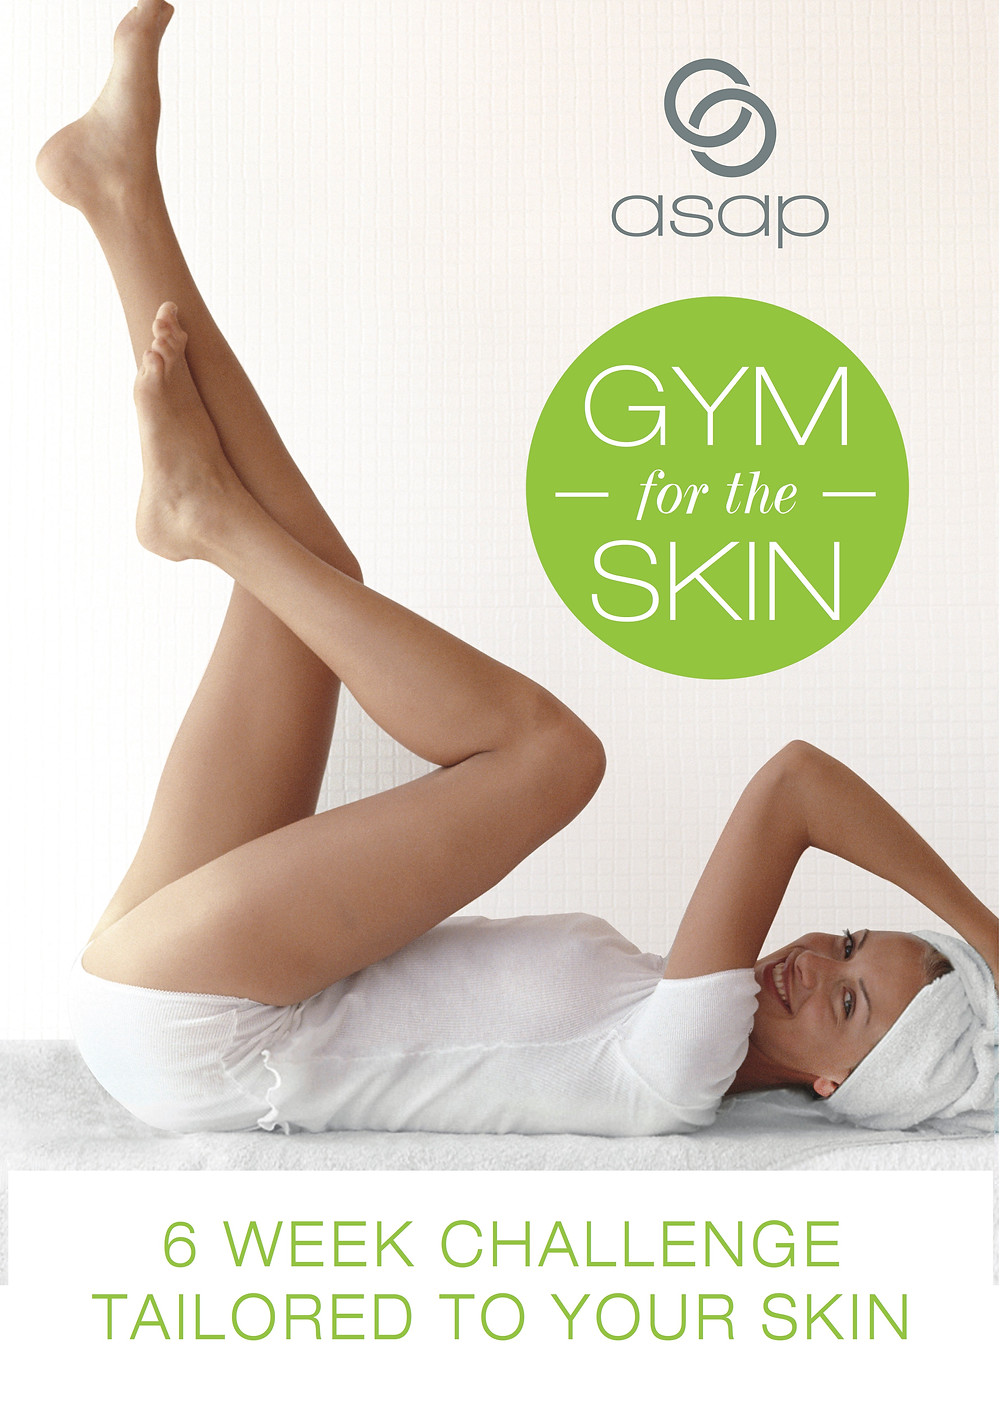 ASAP 6 week skin workout programme is tailored and suited to actively address your specific skin concern